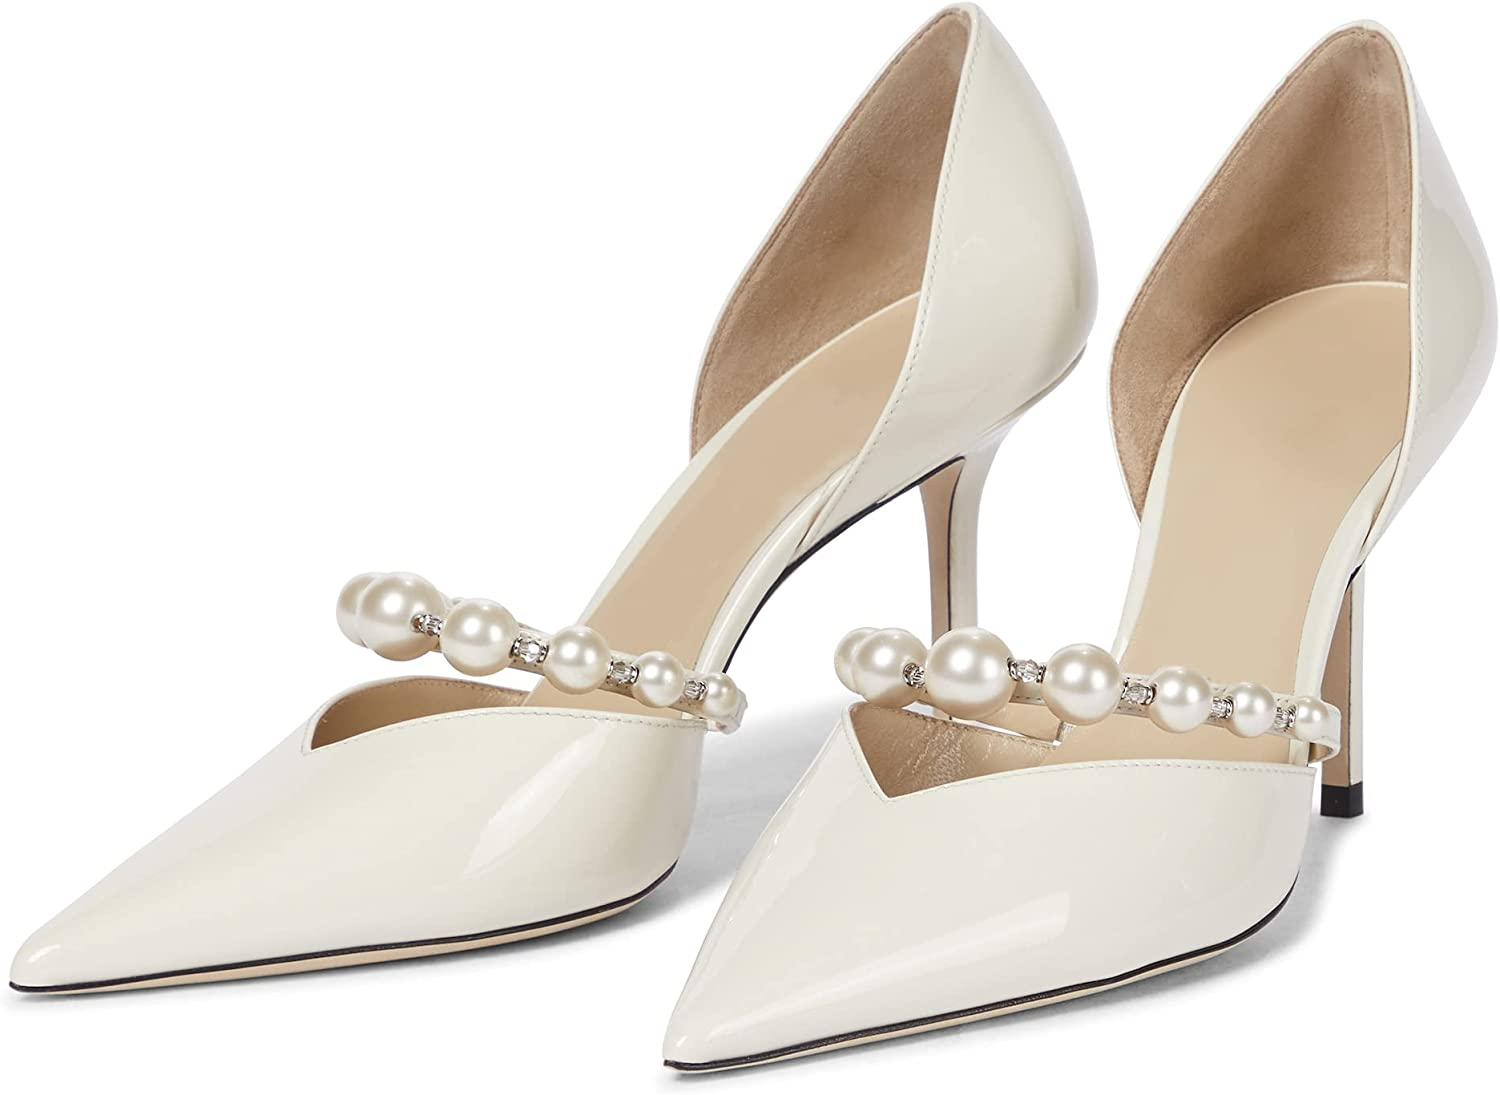 Syktkmx Womens Japan Maker New Stiletto Pumps Thin D'Orsay A surprise price is realized Heels High Toe Point